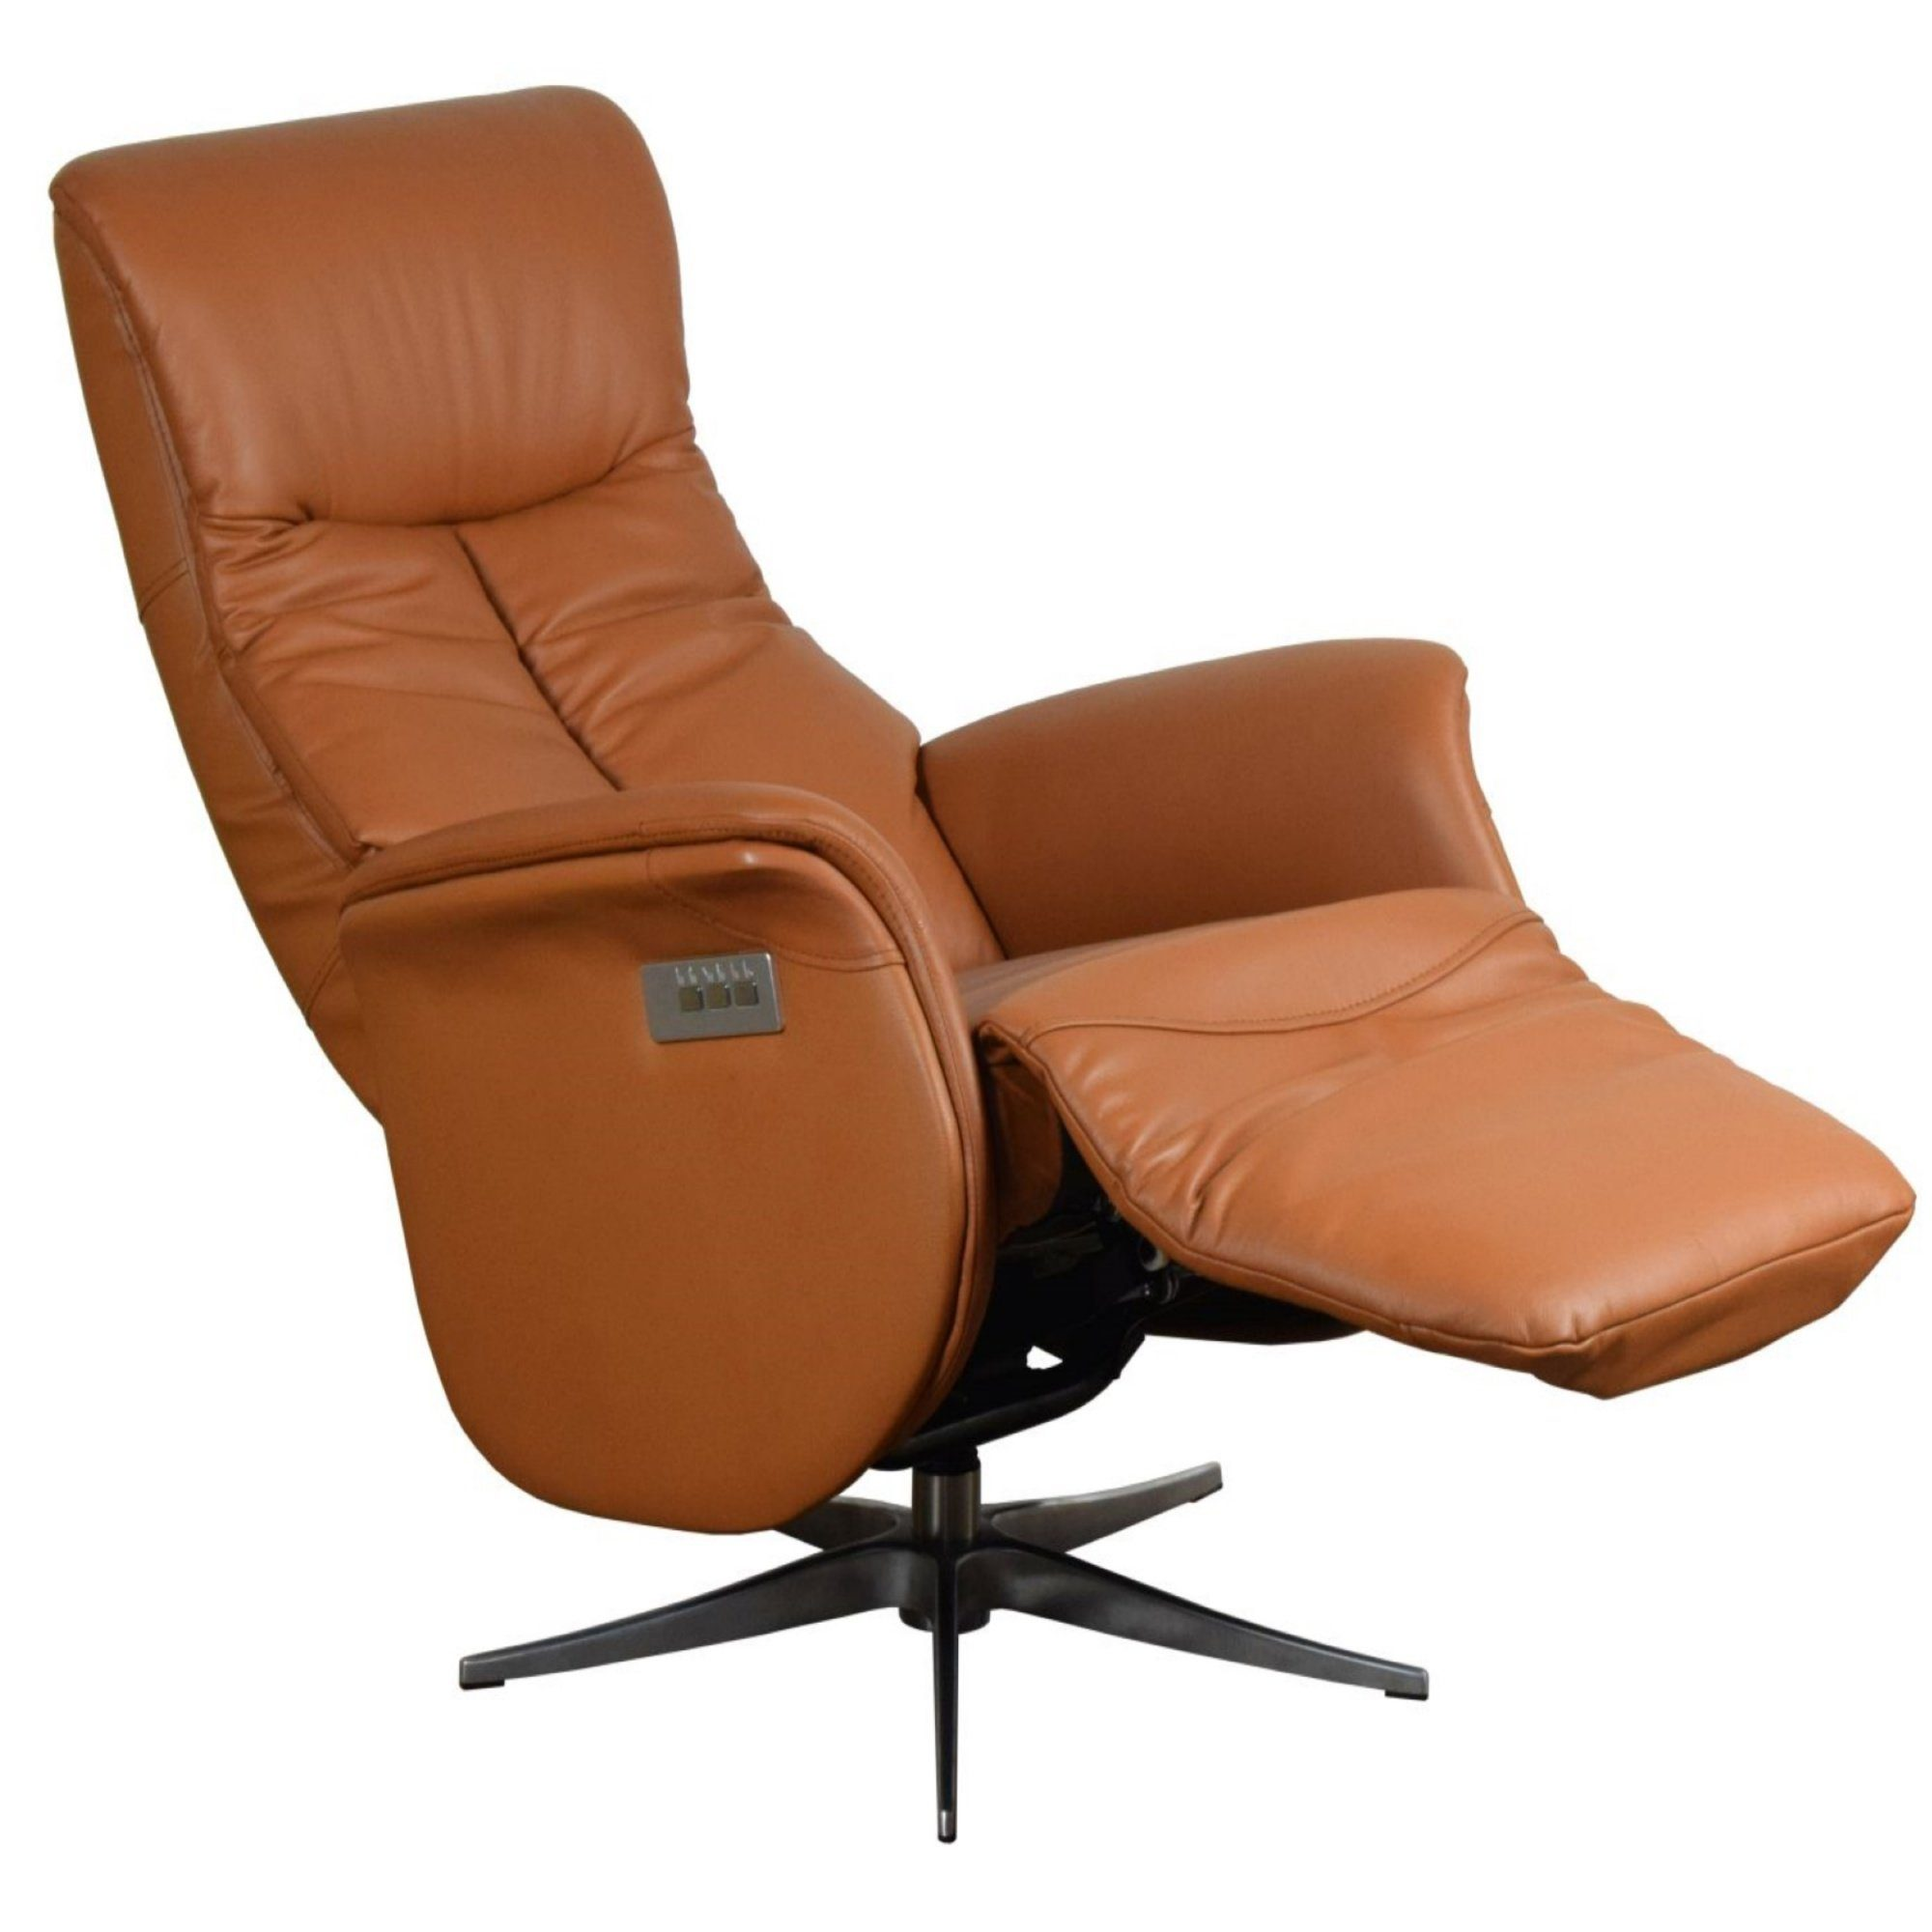 Sessel Leder Cognac Louming Tv-sessel »premium Fernsehsessel In Cognac-braun Mit 3 Motoren, Relaxfunktion, Premium Leder & Kunstleder, Aluminium Gestell, 360° Drehbar, Retro-design« Online Kaufen | Otto